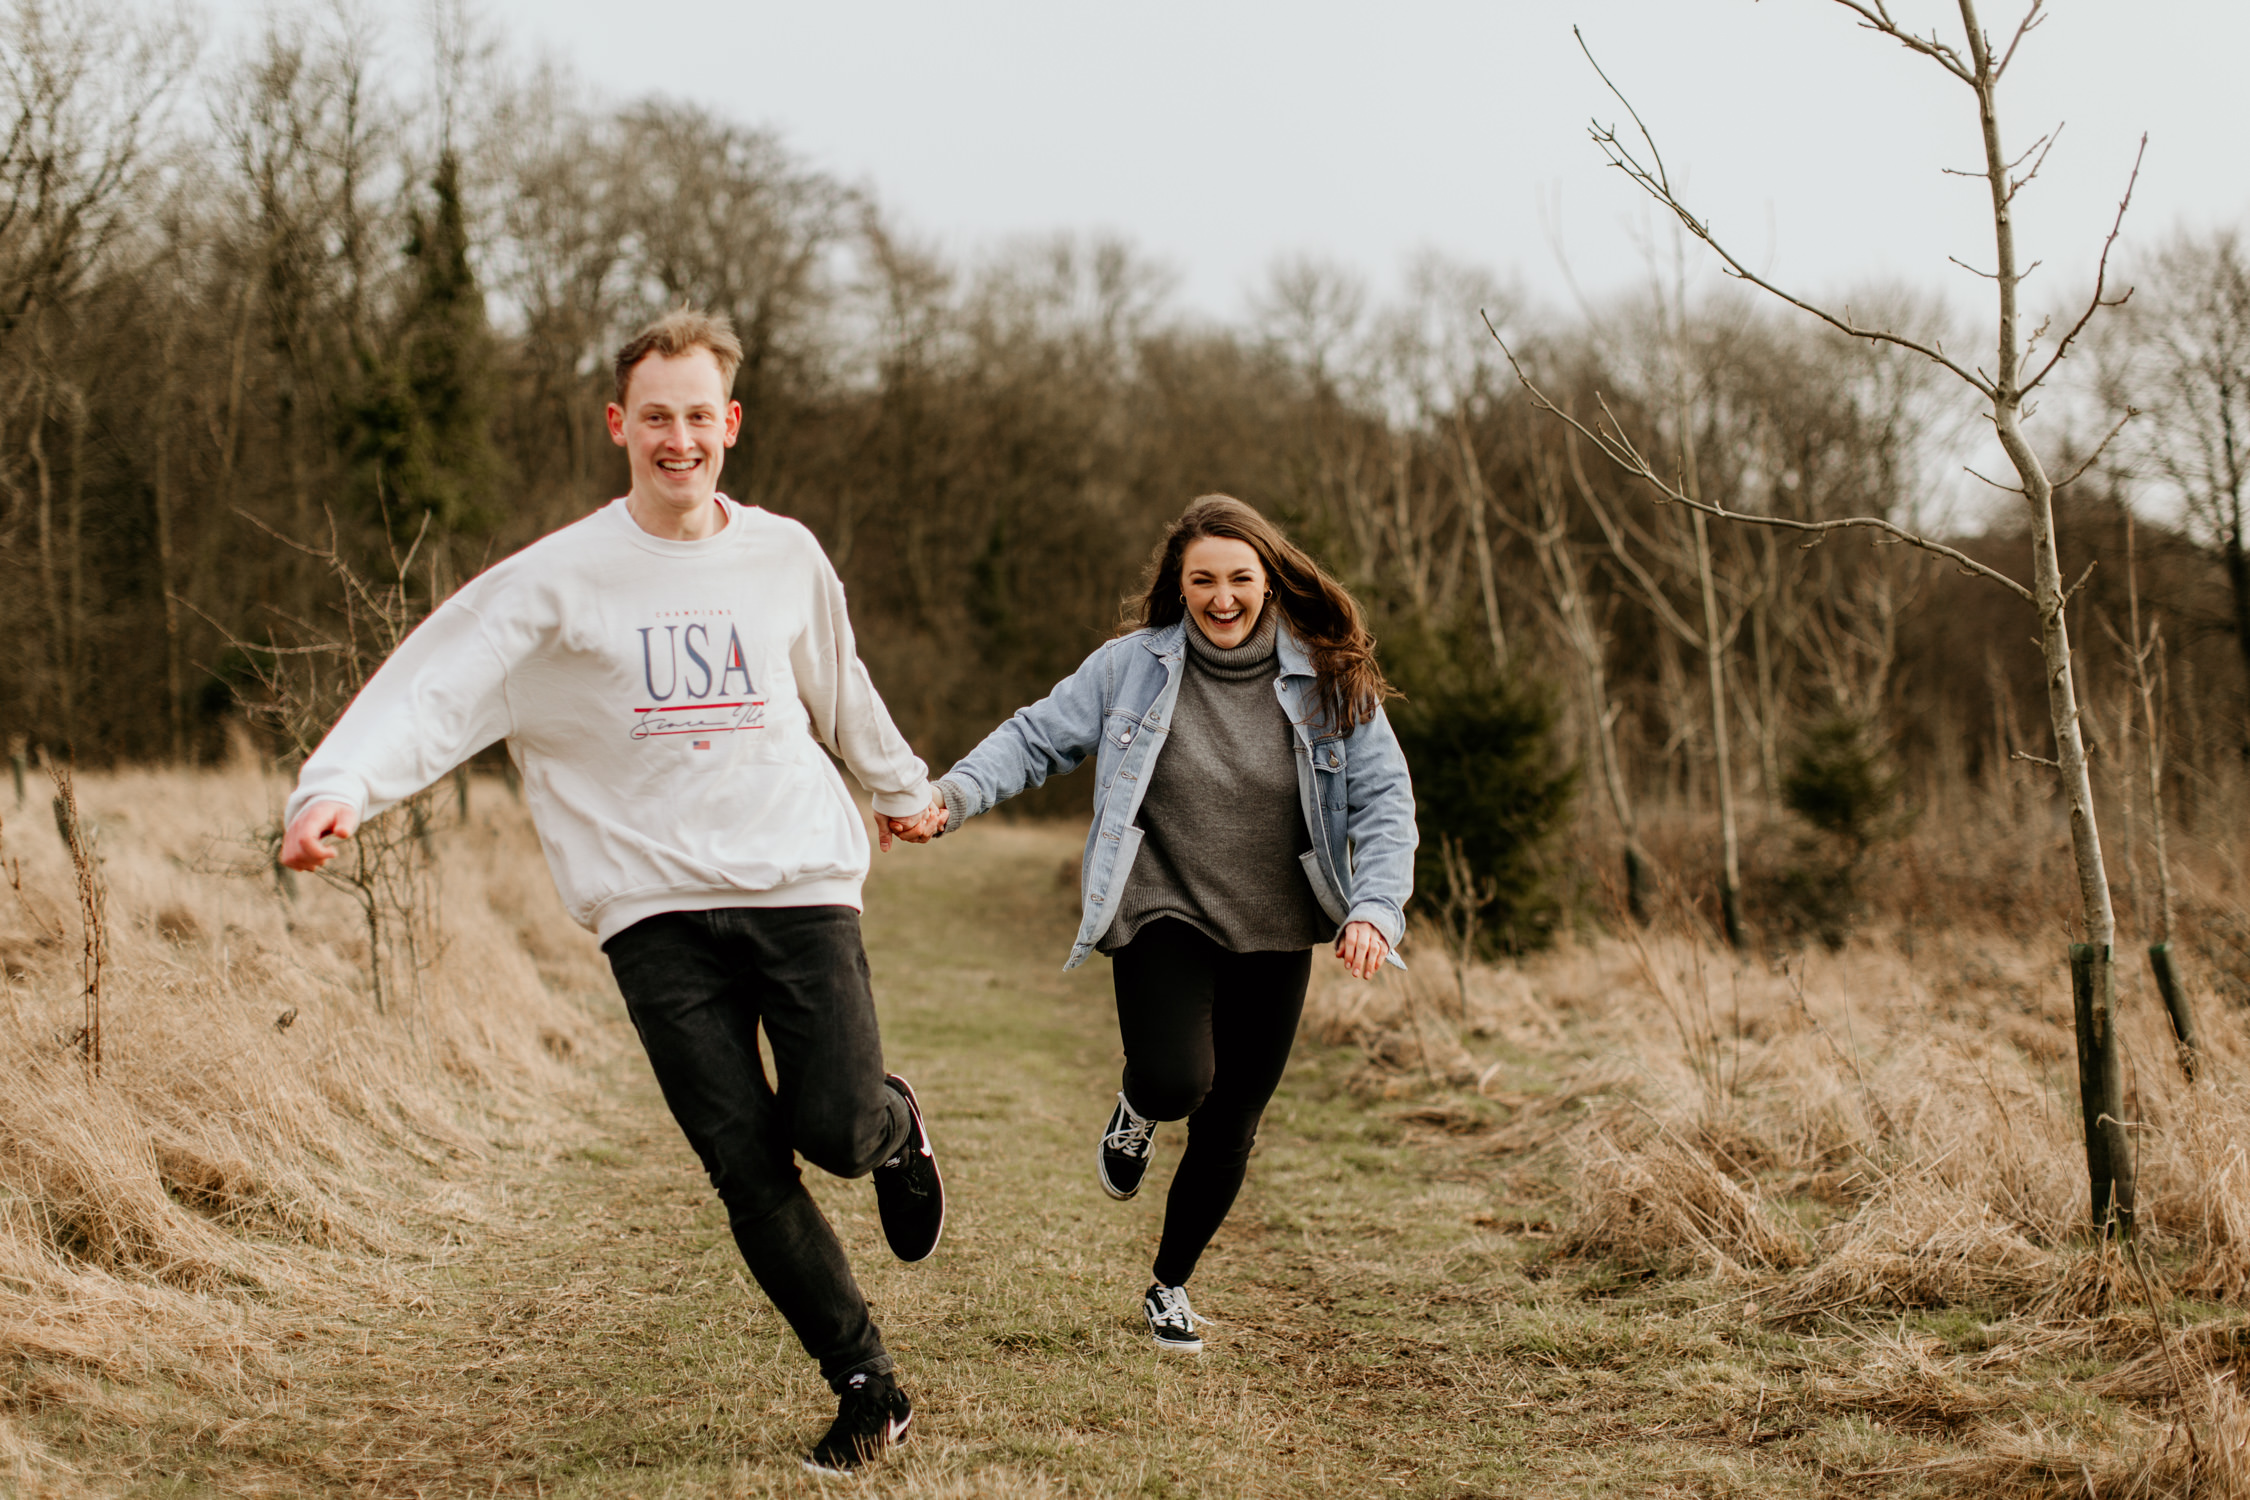 fun shot of couple running during their engagement shoot in the Cotswolds countryside